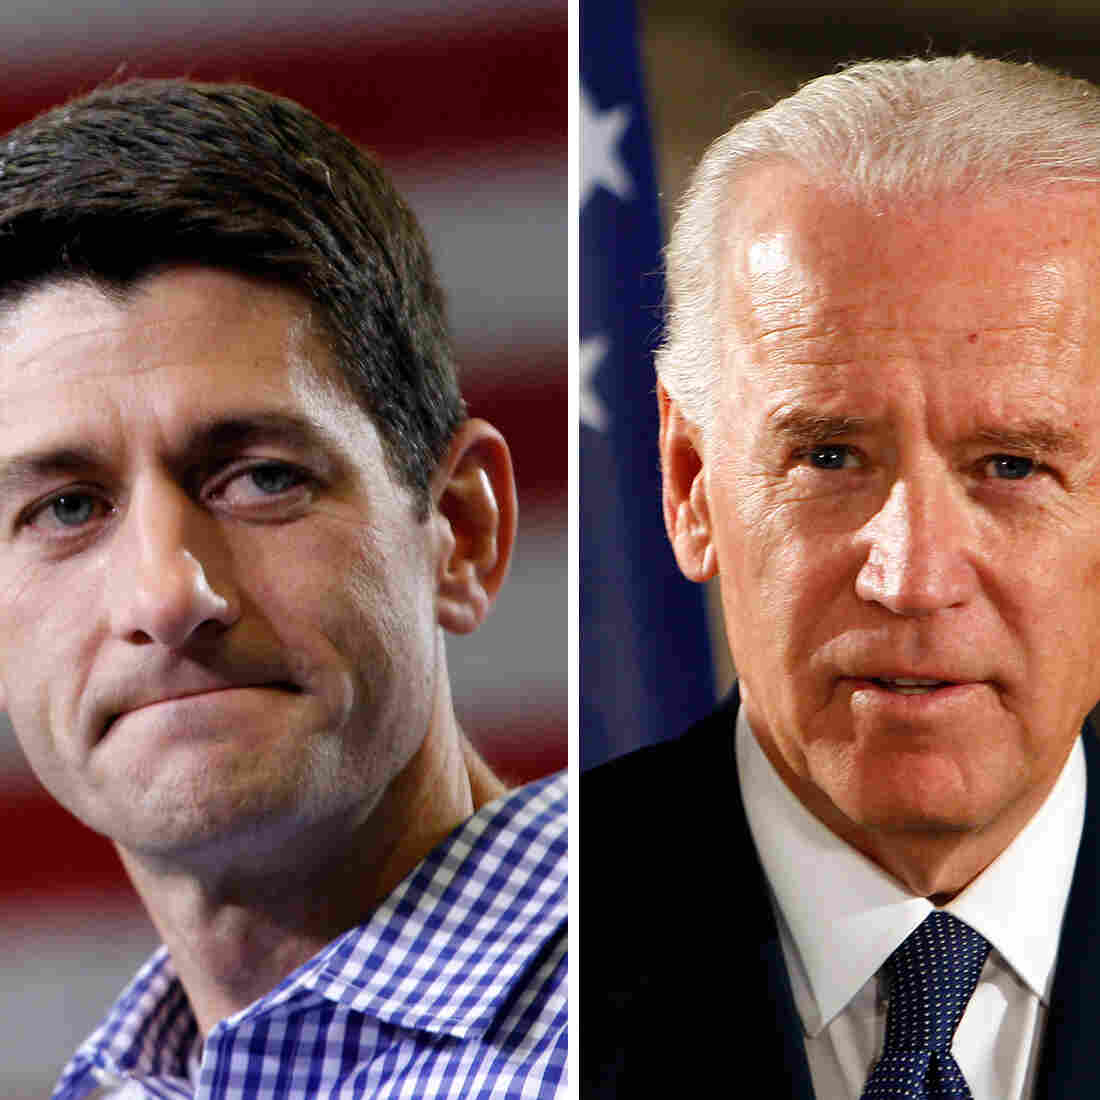 Biden And Ryan Share Faith, But Not Worldview